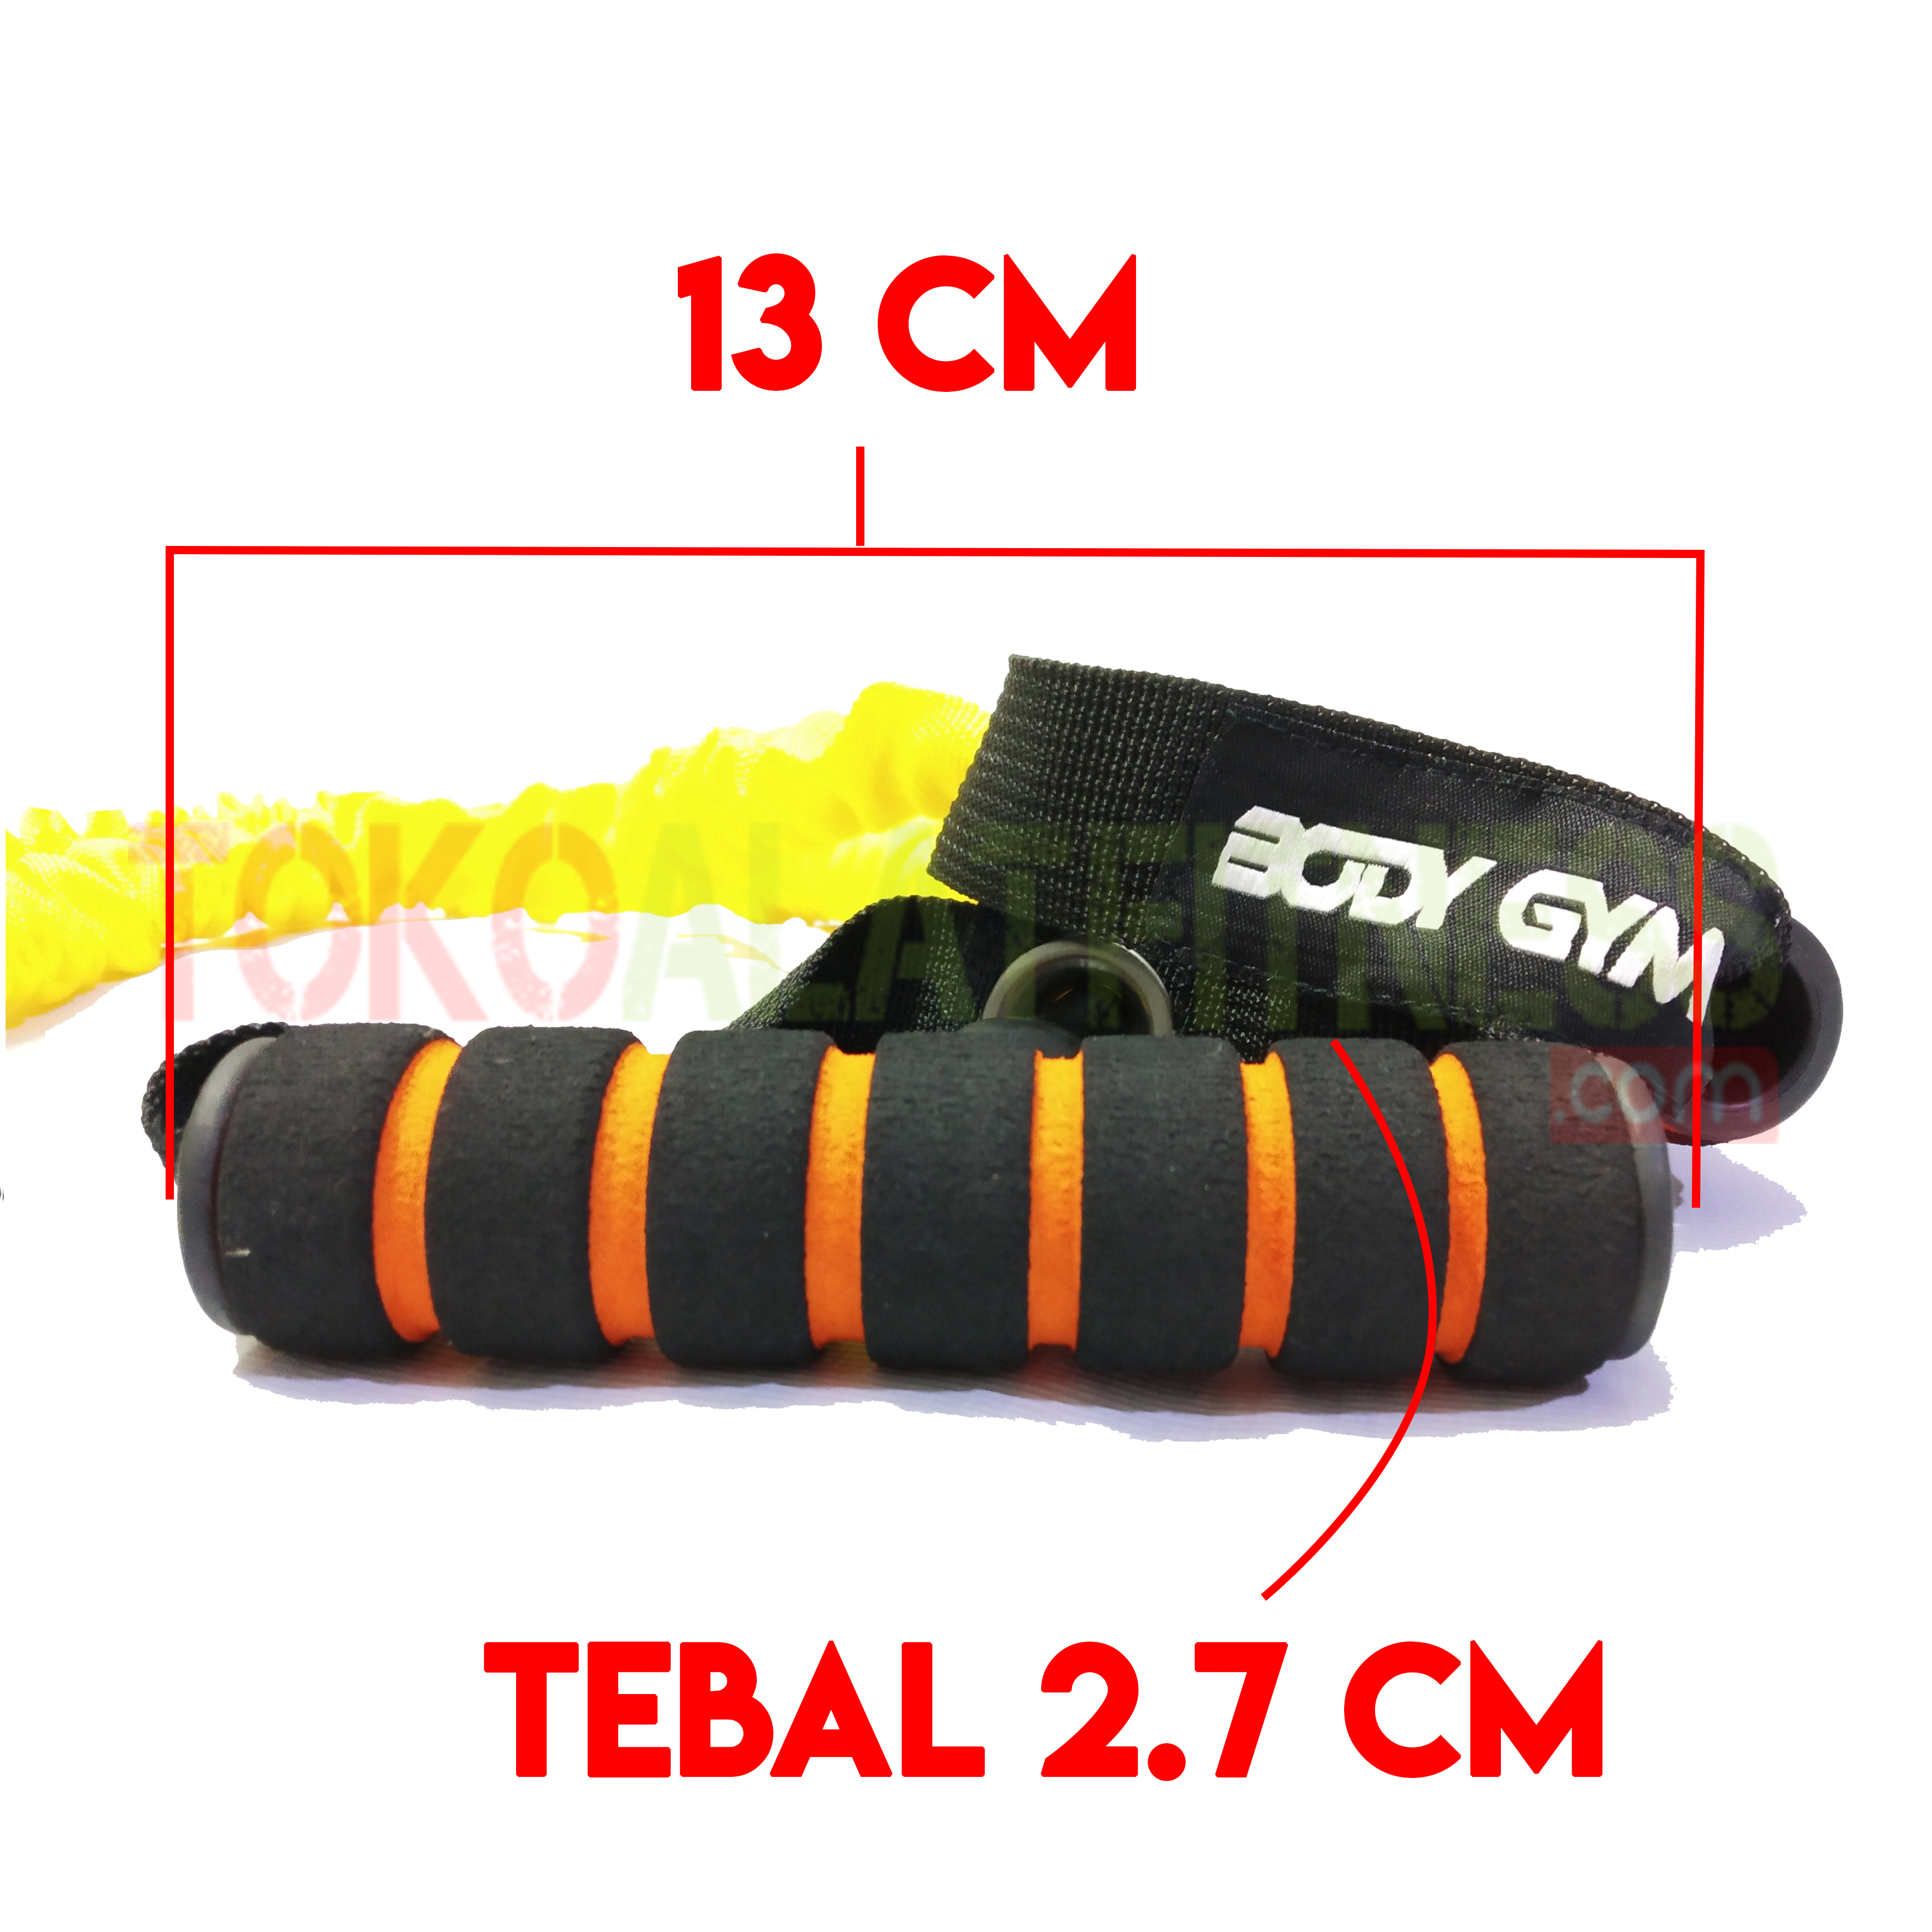 PALL ROPE KUNING SPEK 2 WTM - Resistance Band / Strap with Handle Kuning 15 Lbs Body Gym - ASSRB18